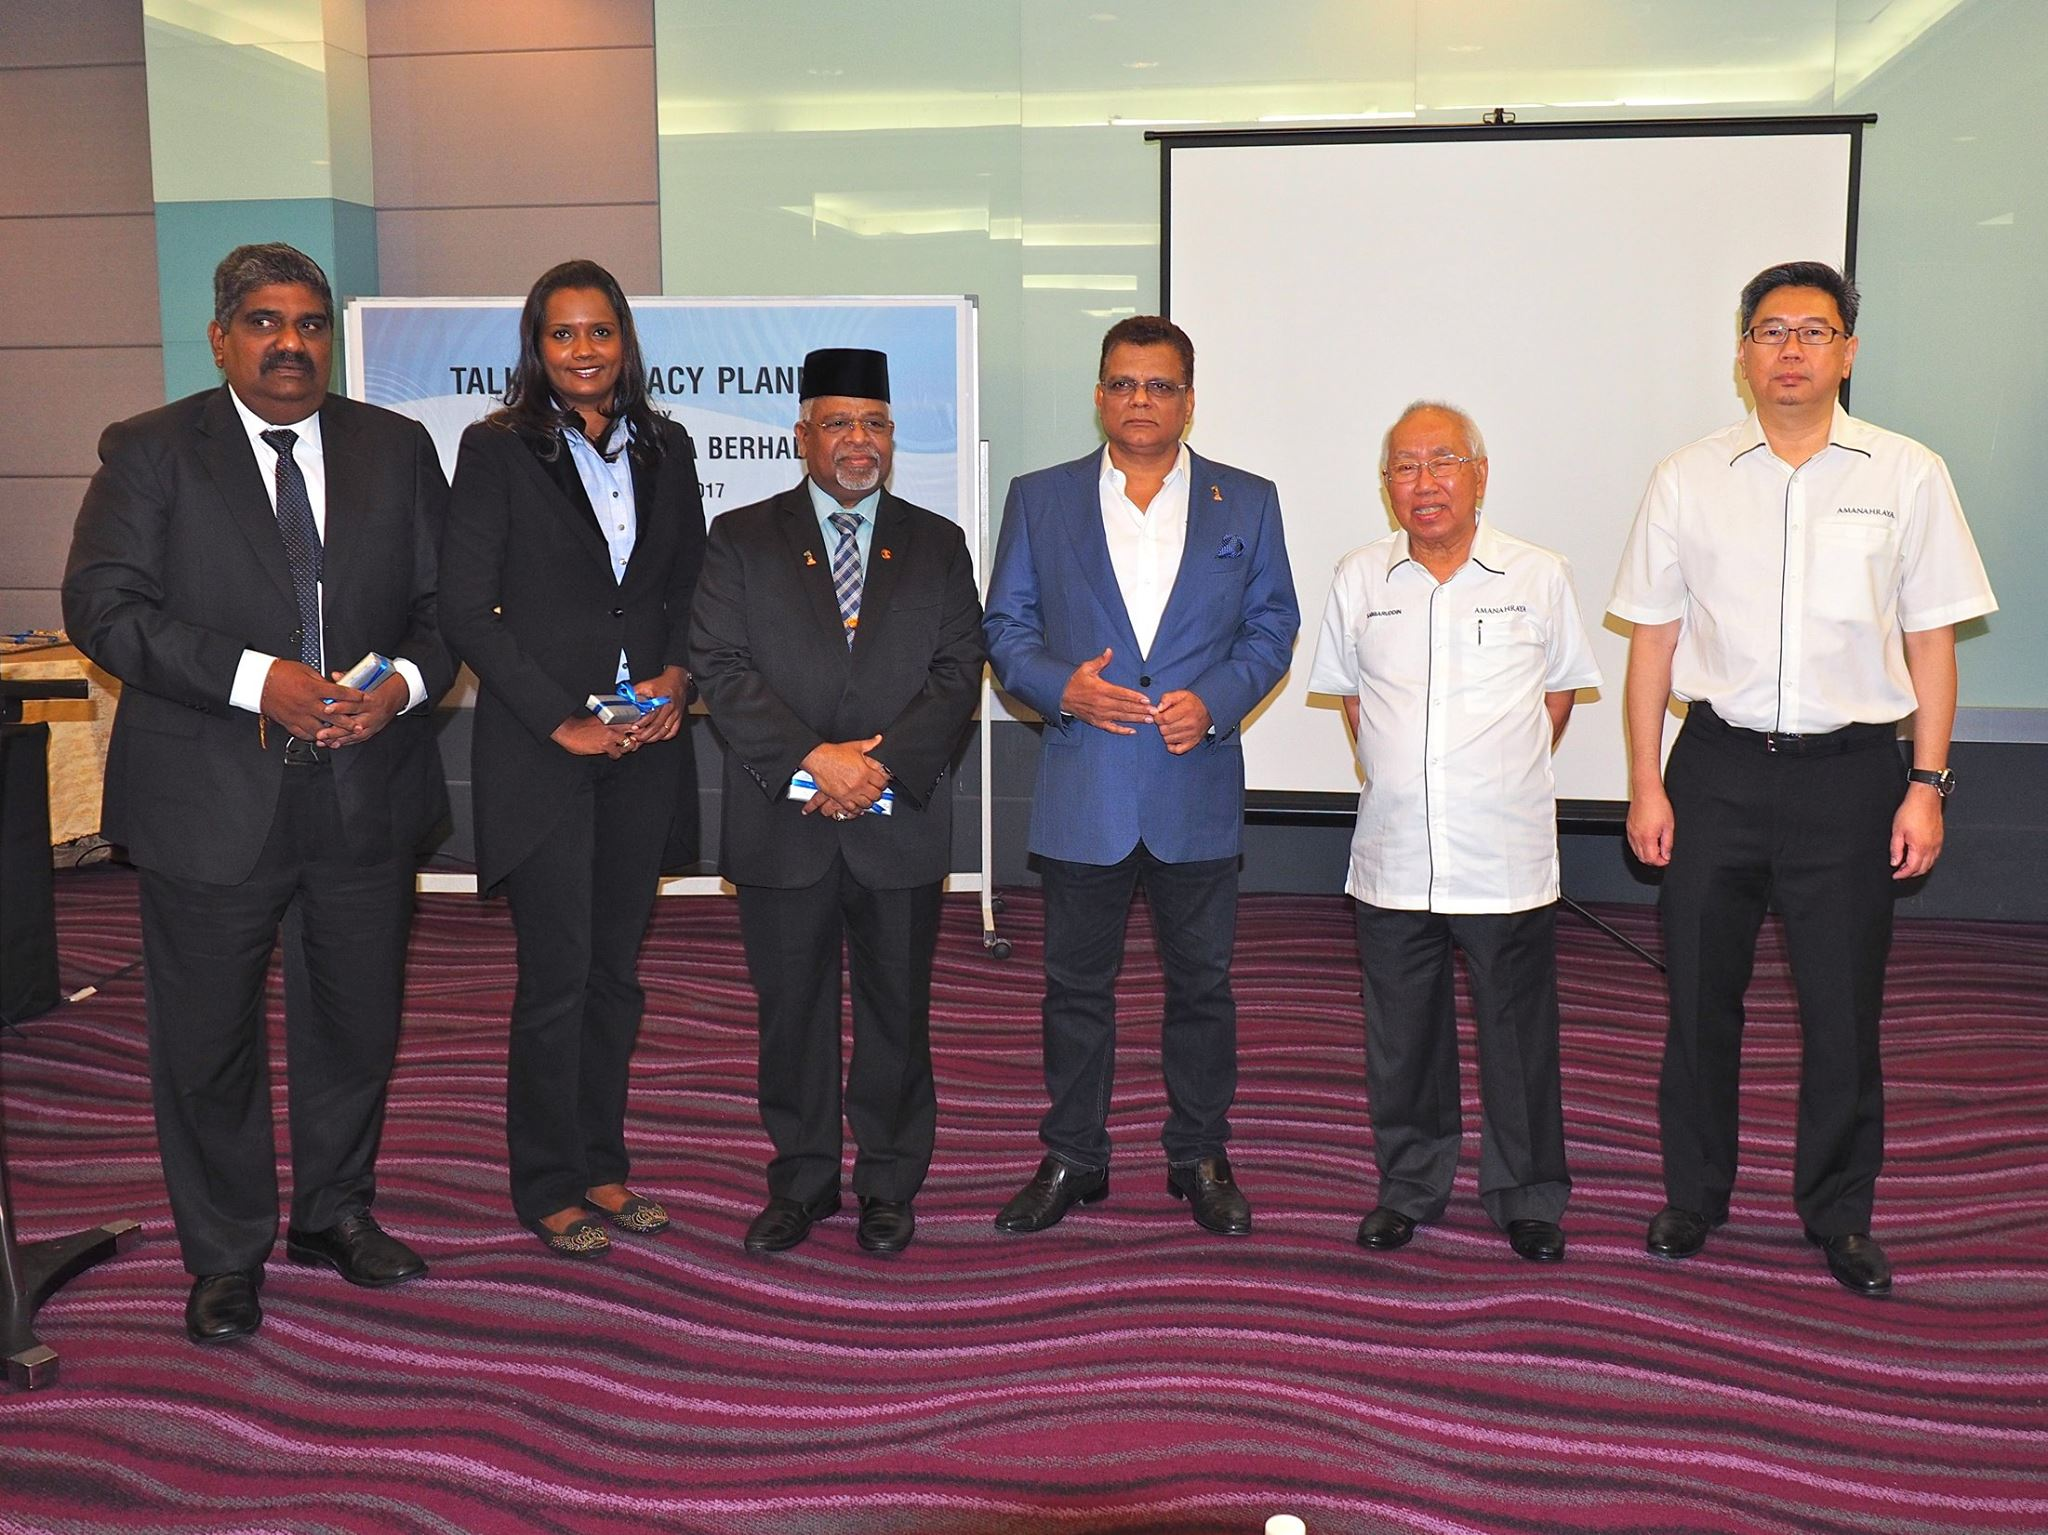 The briefing session was held on March 4, 2017 in Kuala Lumpur Deluxe Hotel. The briefing was held to raise awareness and understanding about inheritance.